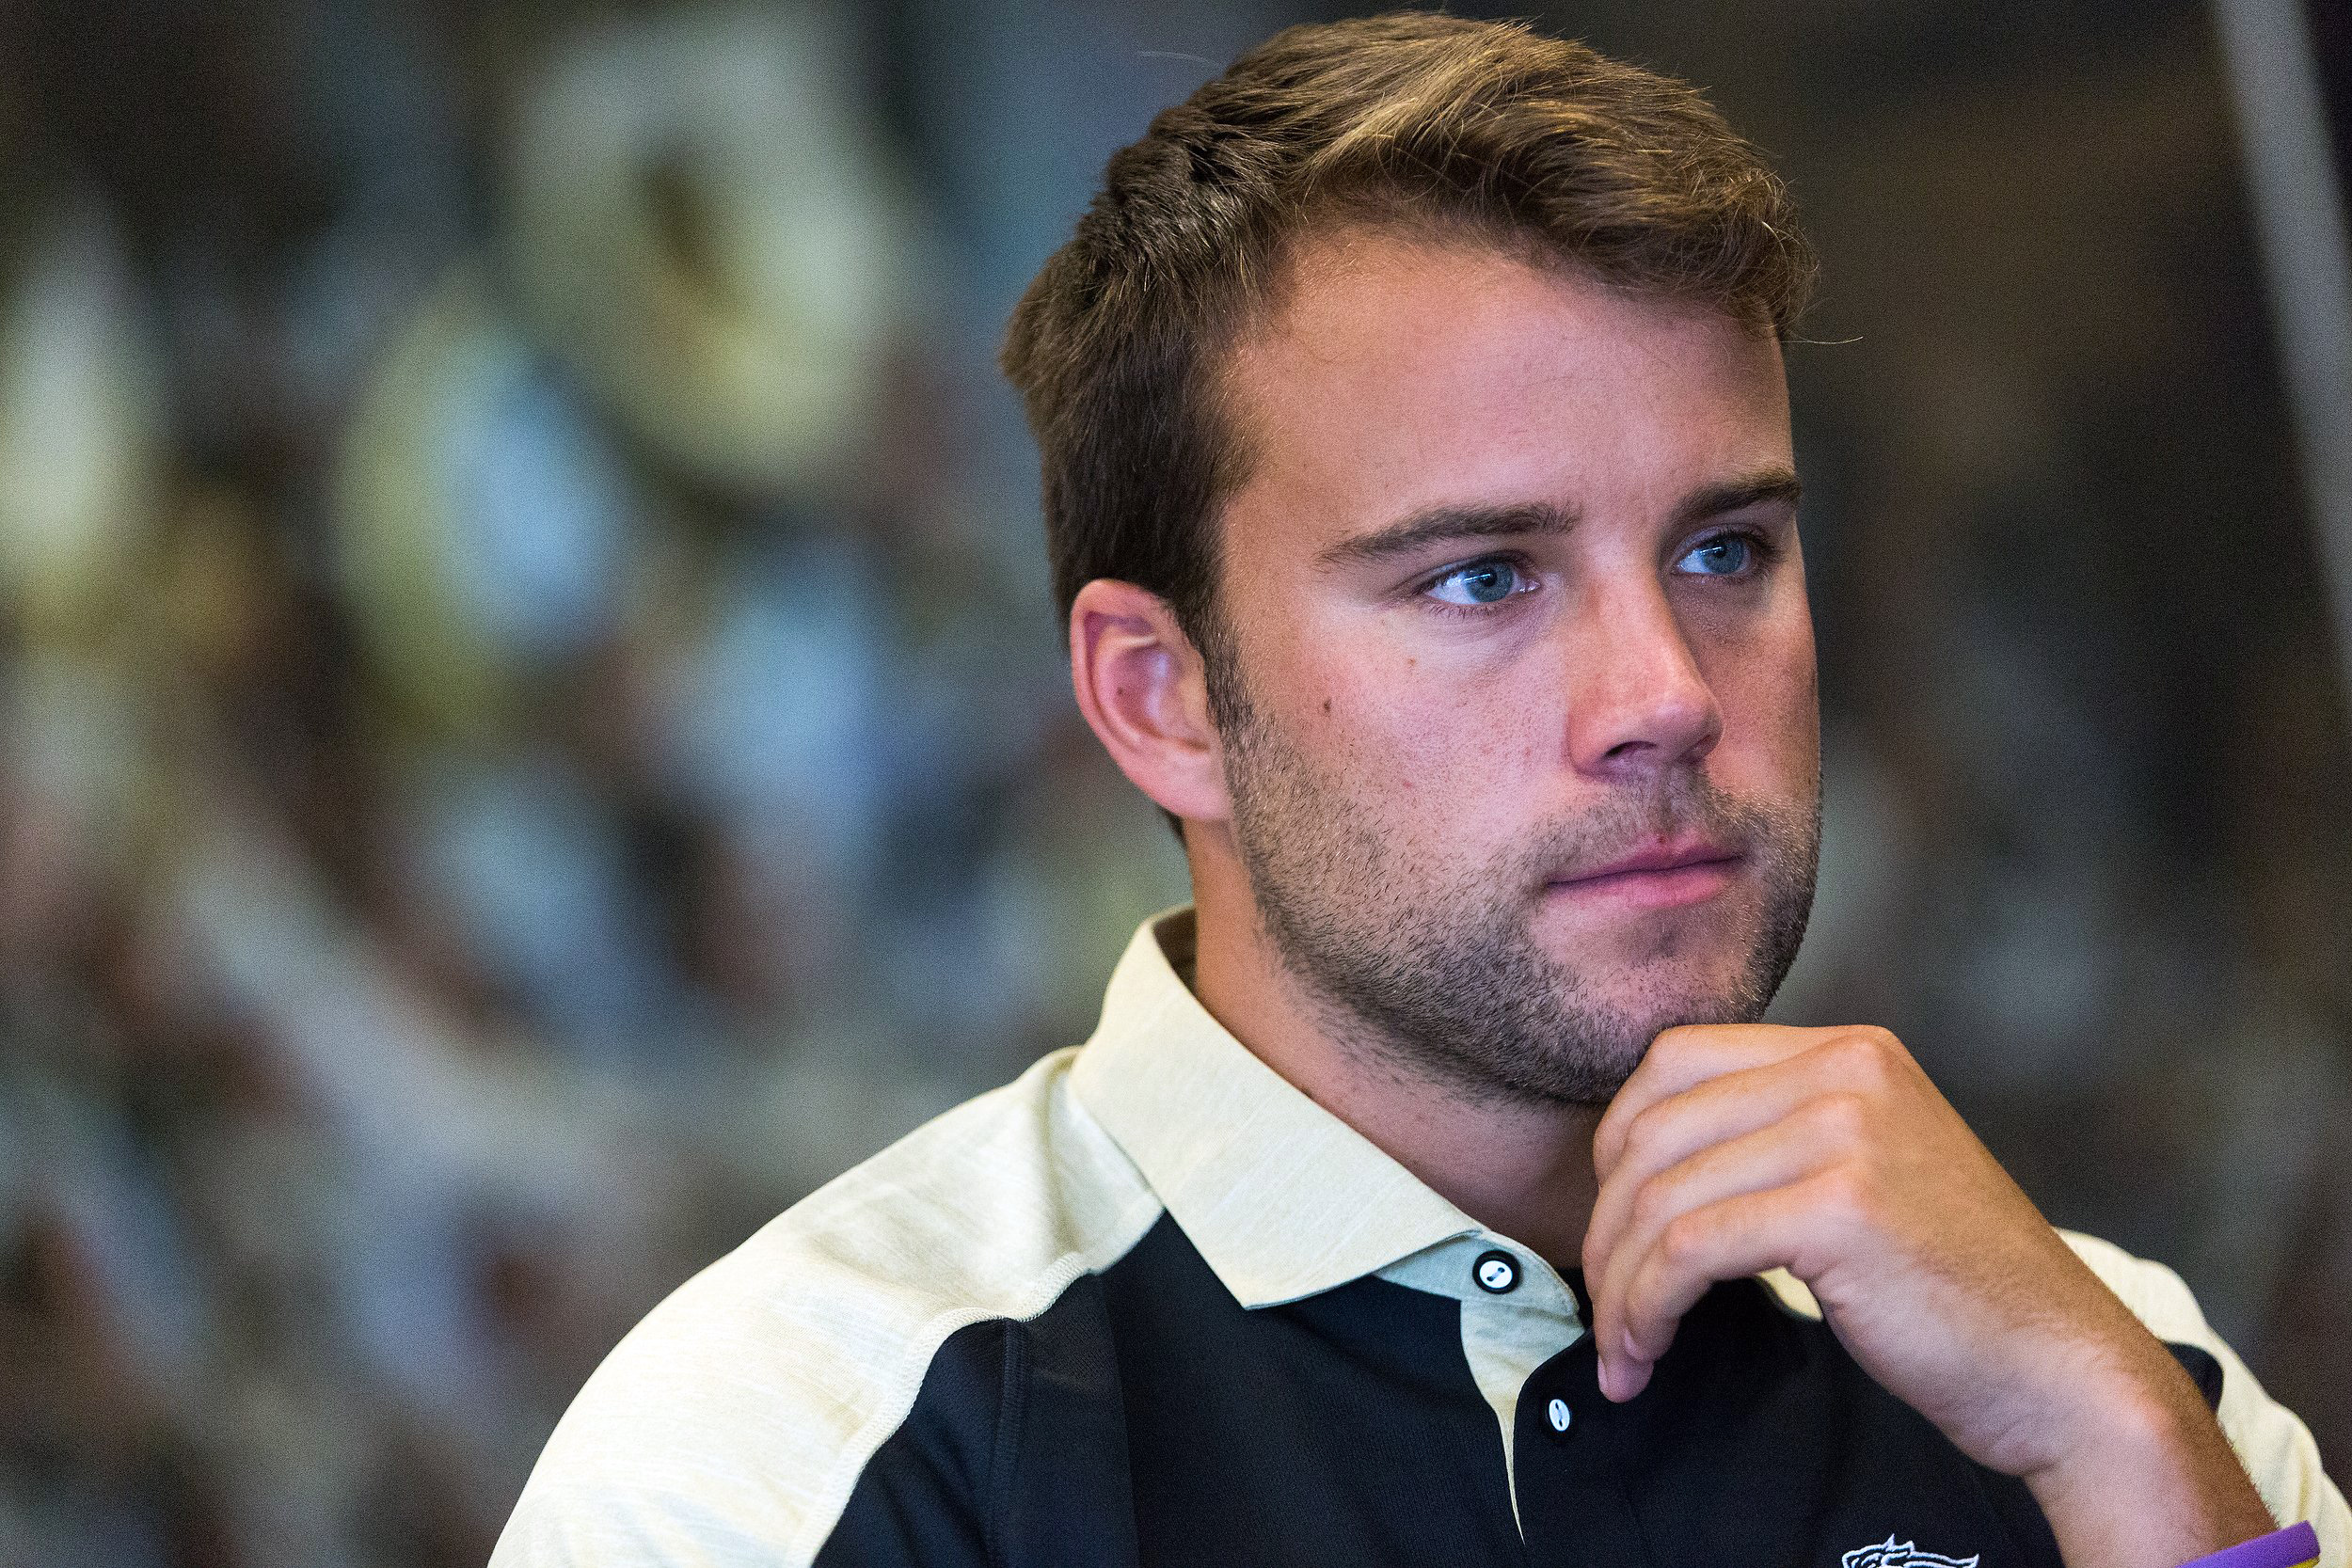 In this Sunday, Aug. 7, 2016 photo, Western Michigan quarterback Zach Terrell listens during NCAA college football media day at Seelye Athletic Center in Kalamazoo, Mich.(Bryan Bennett/Kalamazoo Gazette-MLive Media Group via AP)